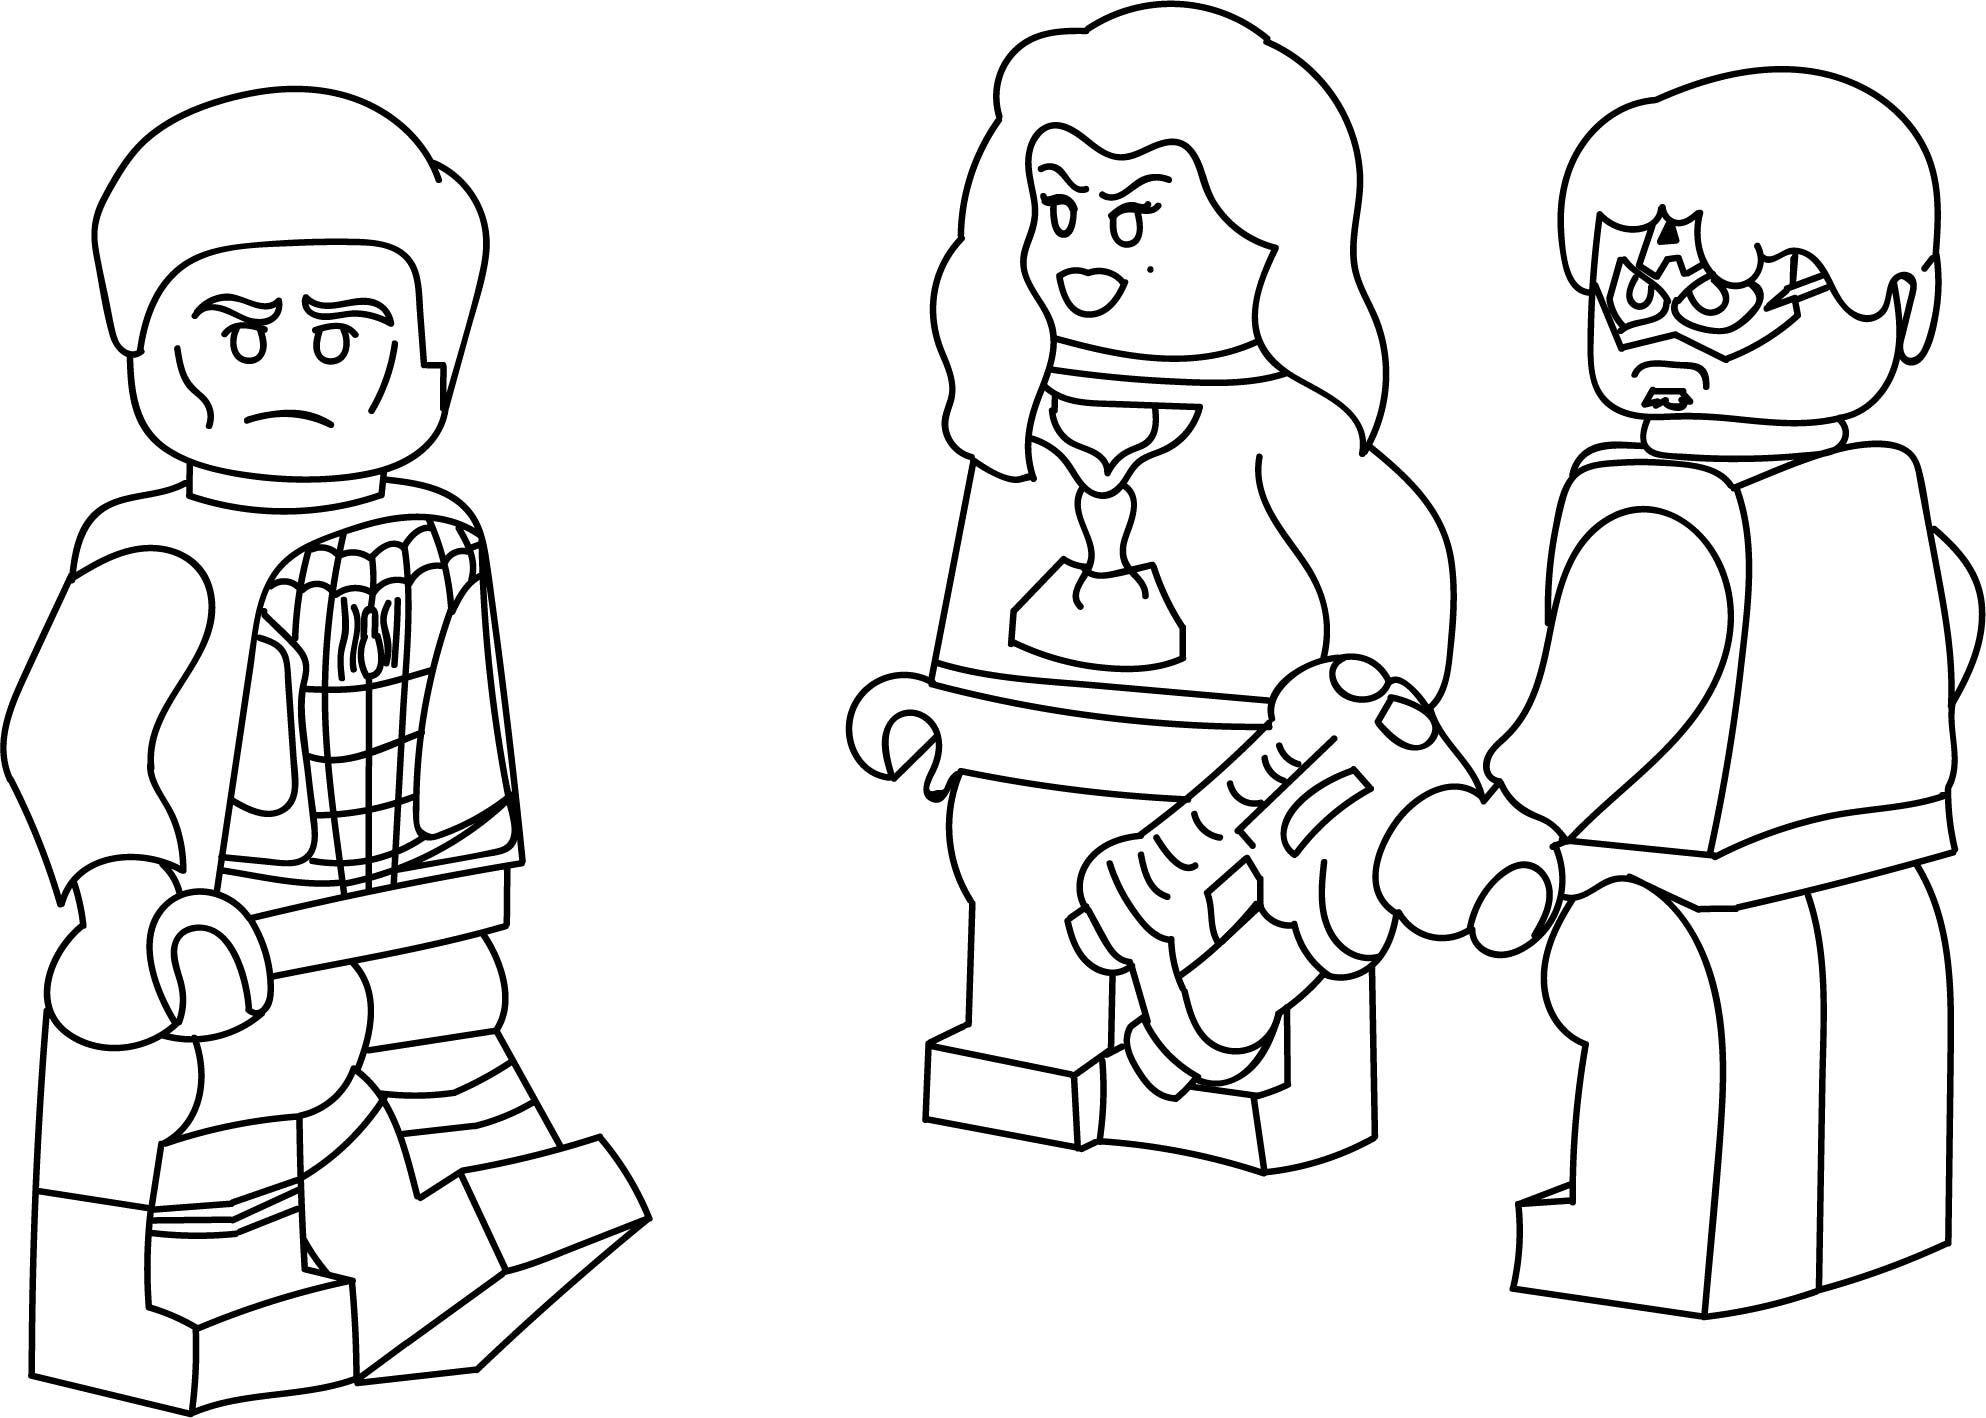 Spider Man Girl Bad Man People Coloring Page